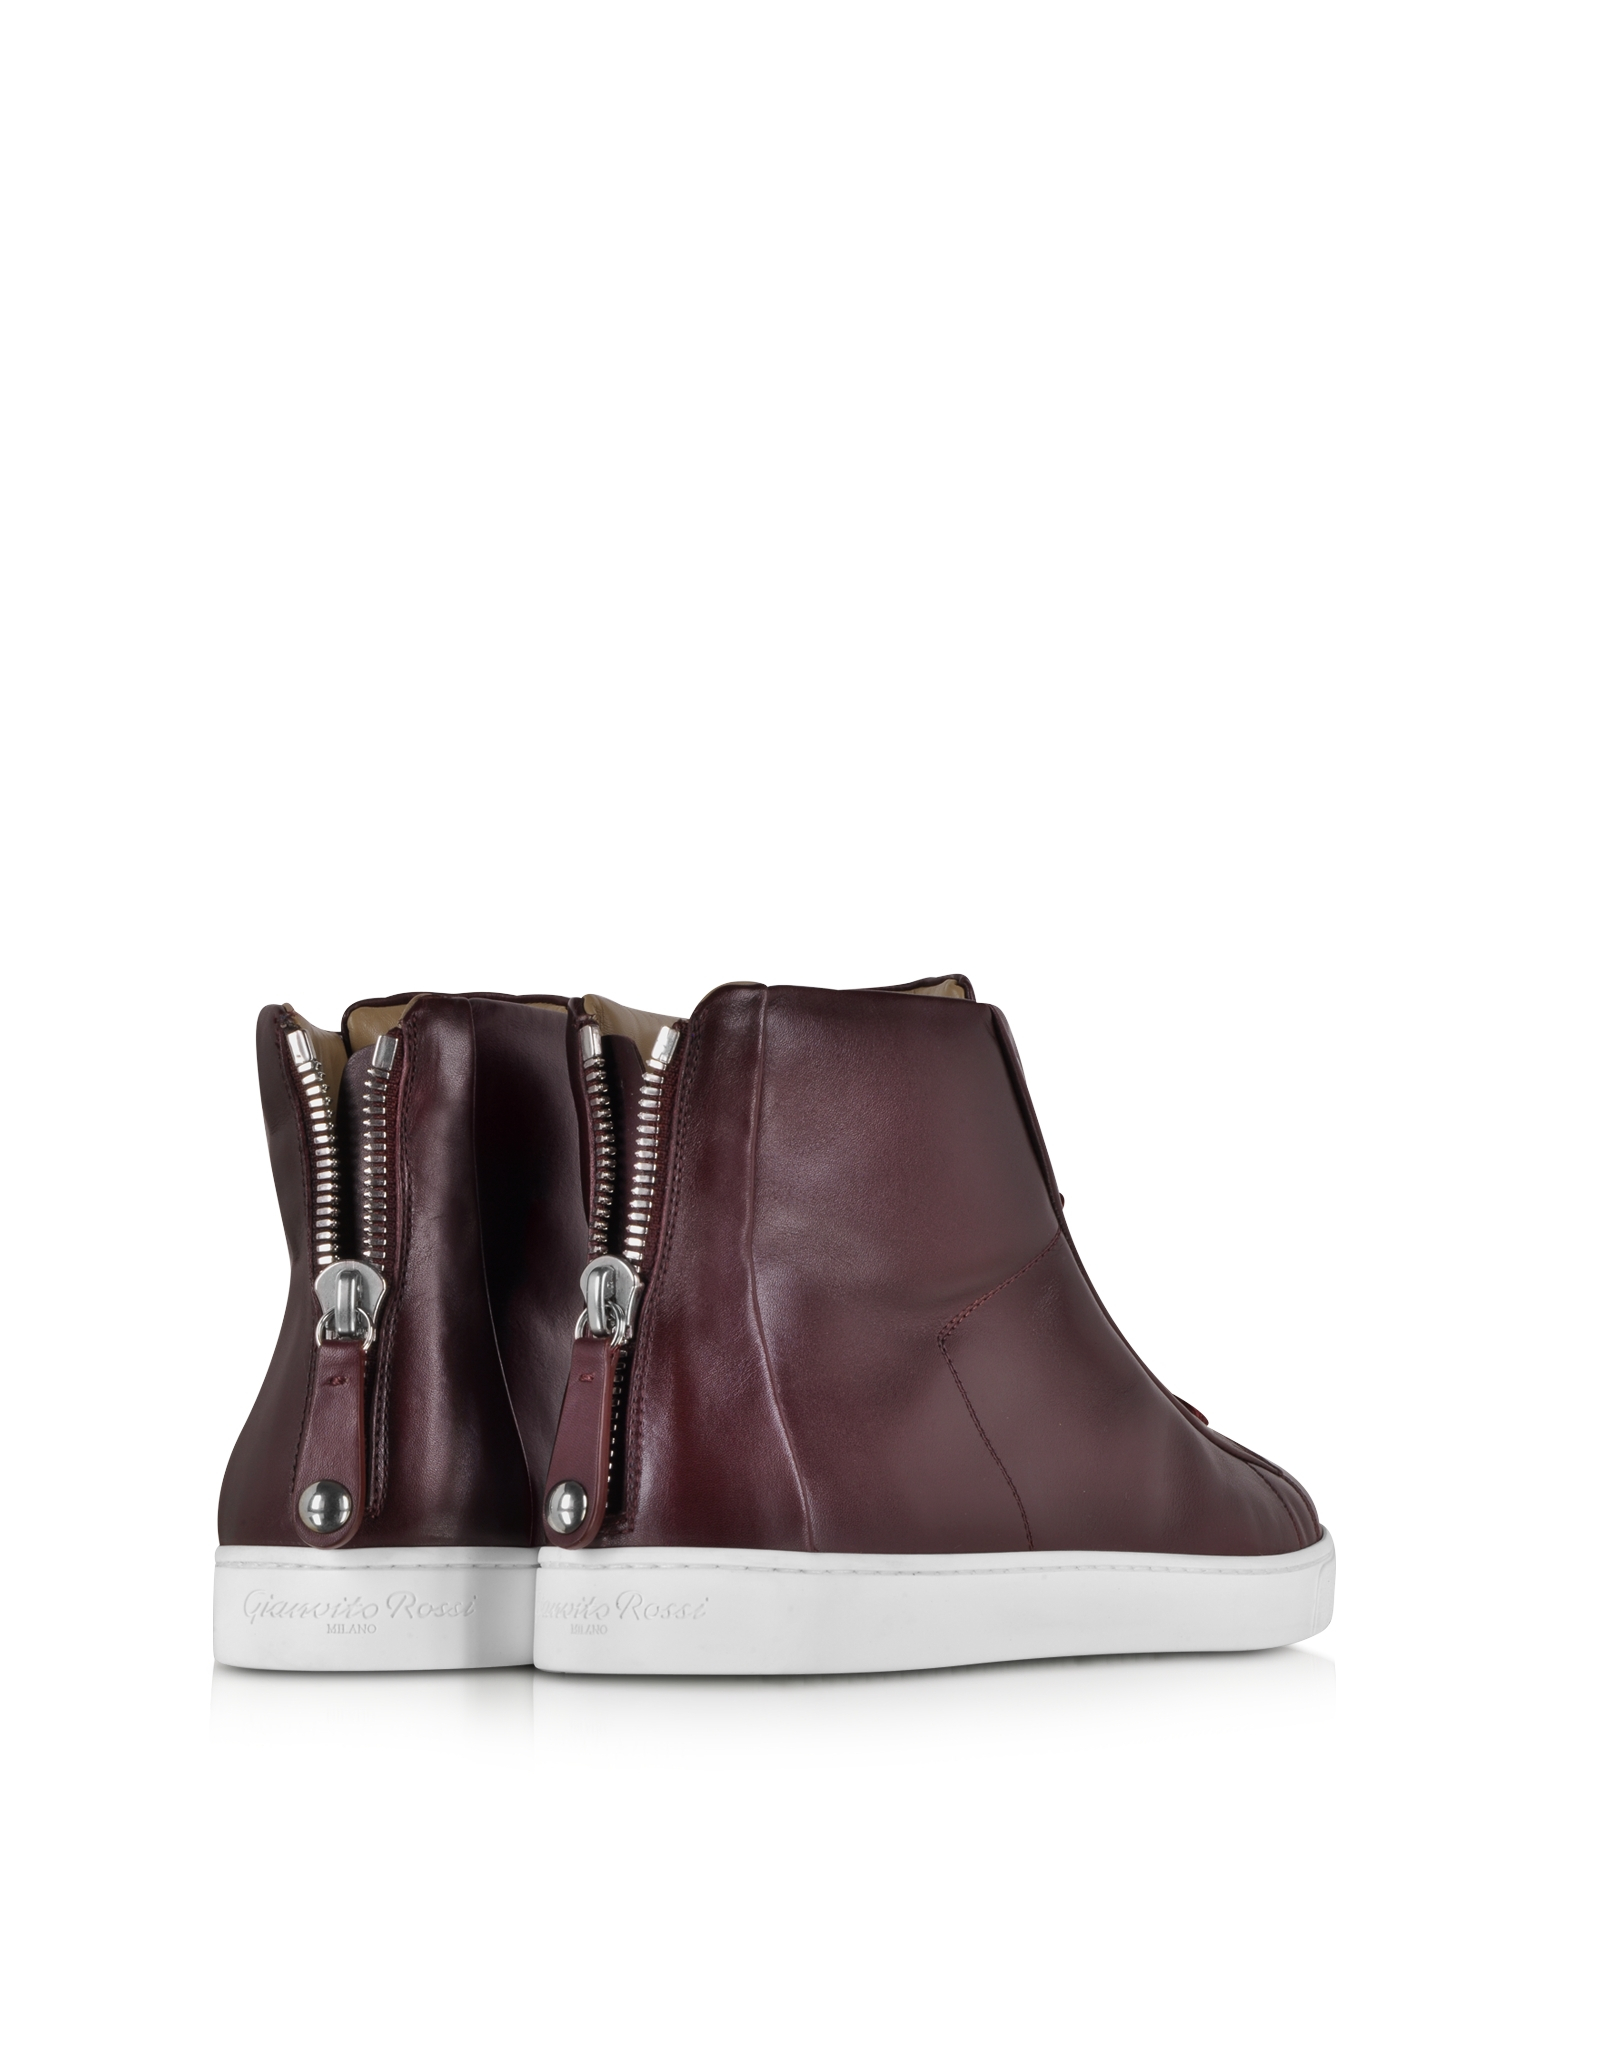 Gianvito Rossi Leather High-Top Sneakers 5uYcdMiFNP